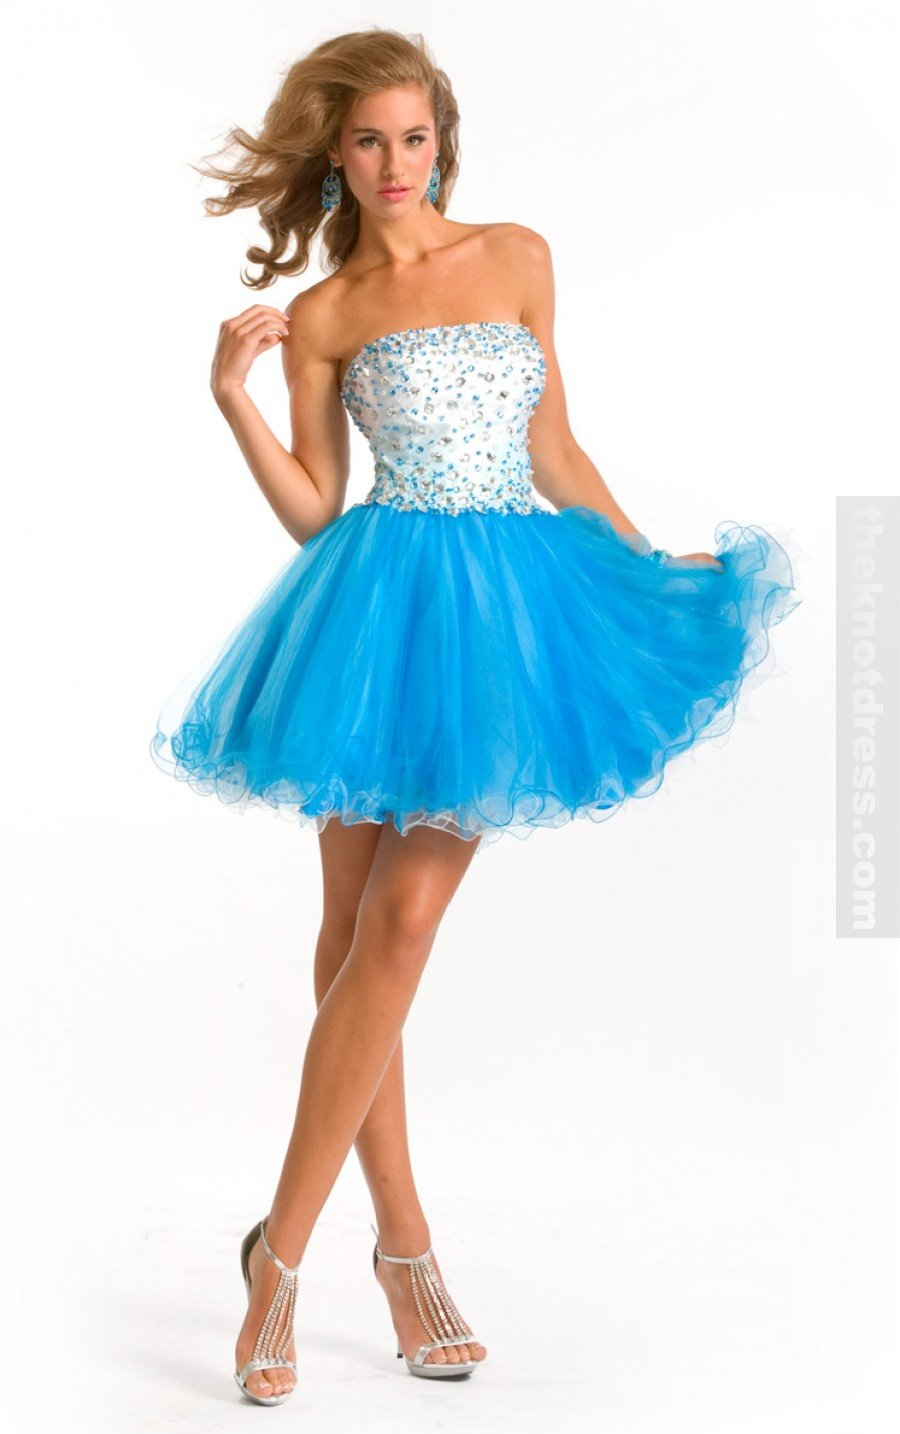 Blue Ball Gown Knee-length Strapless Dress, Cheap Party Dresses Sale Uk